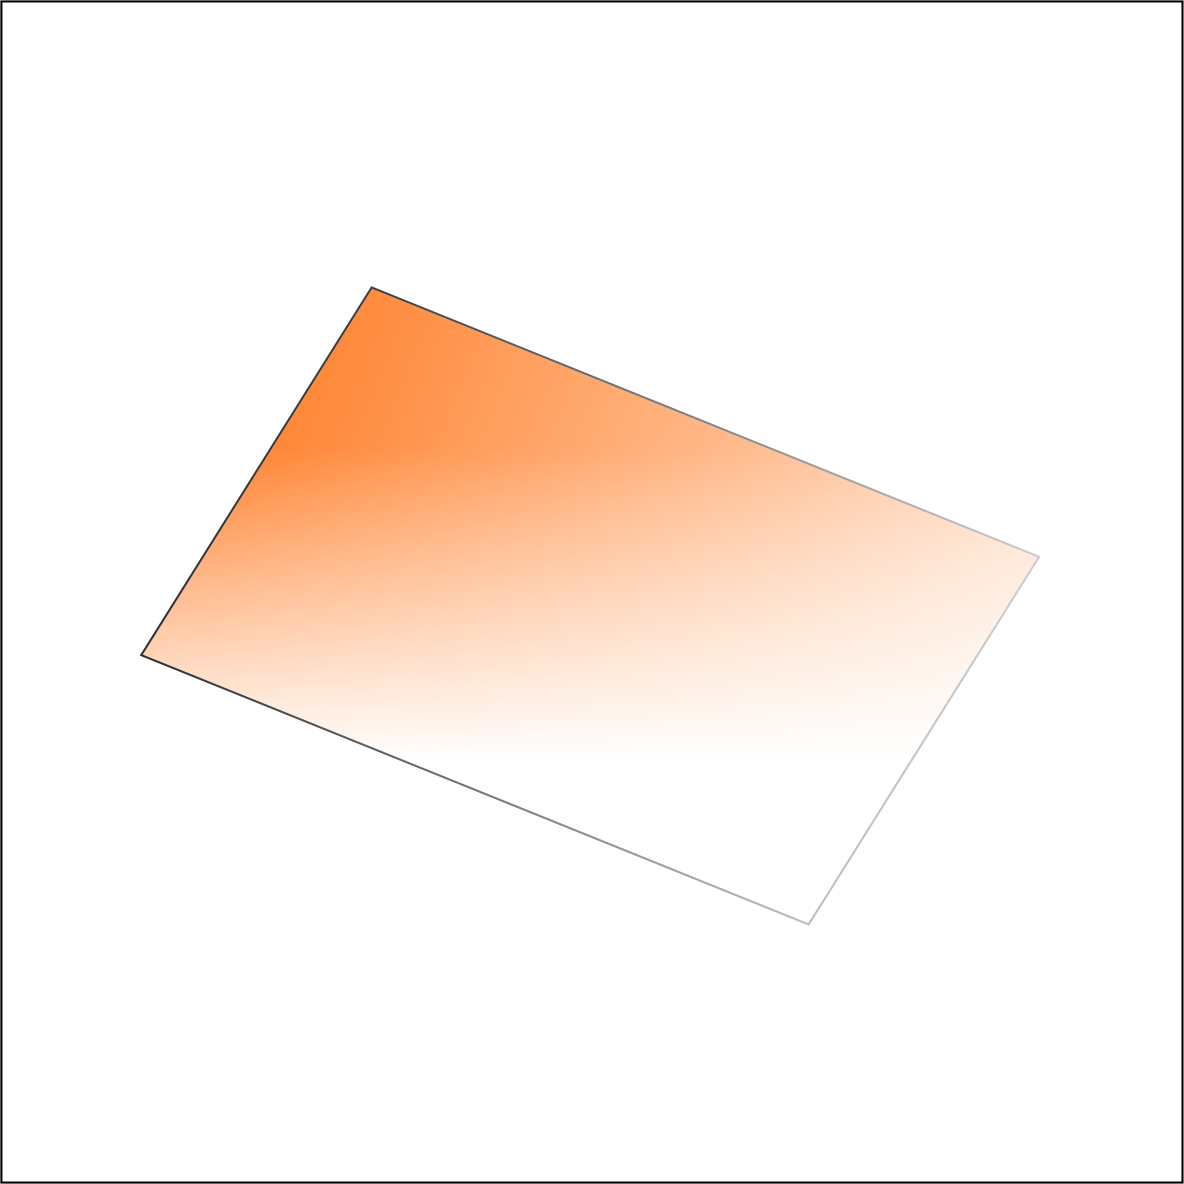 Tiffen orange graduated Filter by Accord Equips